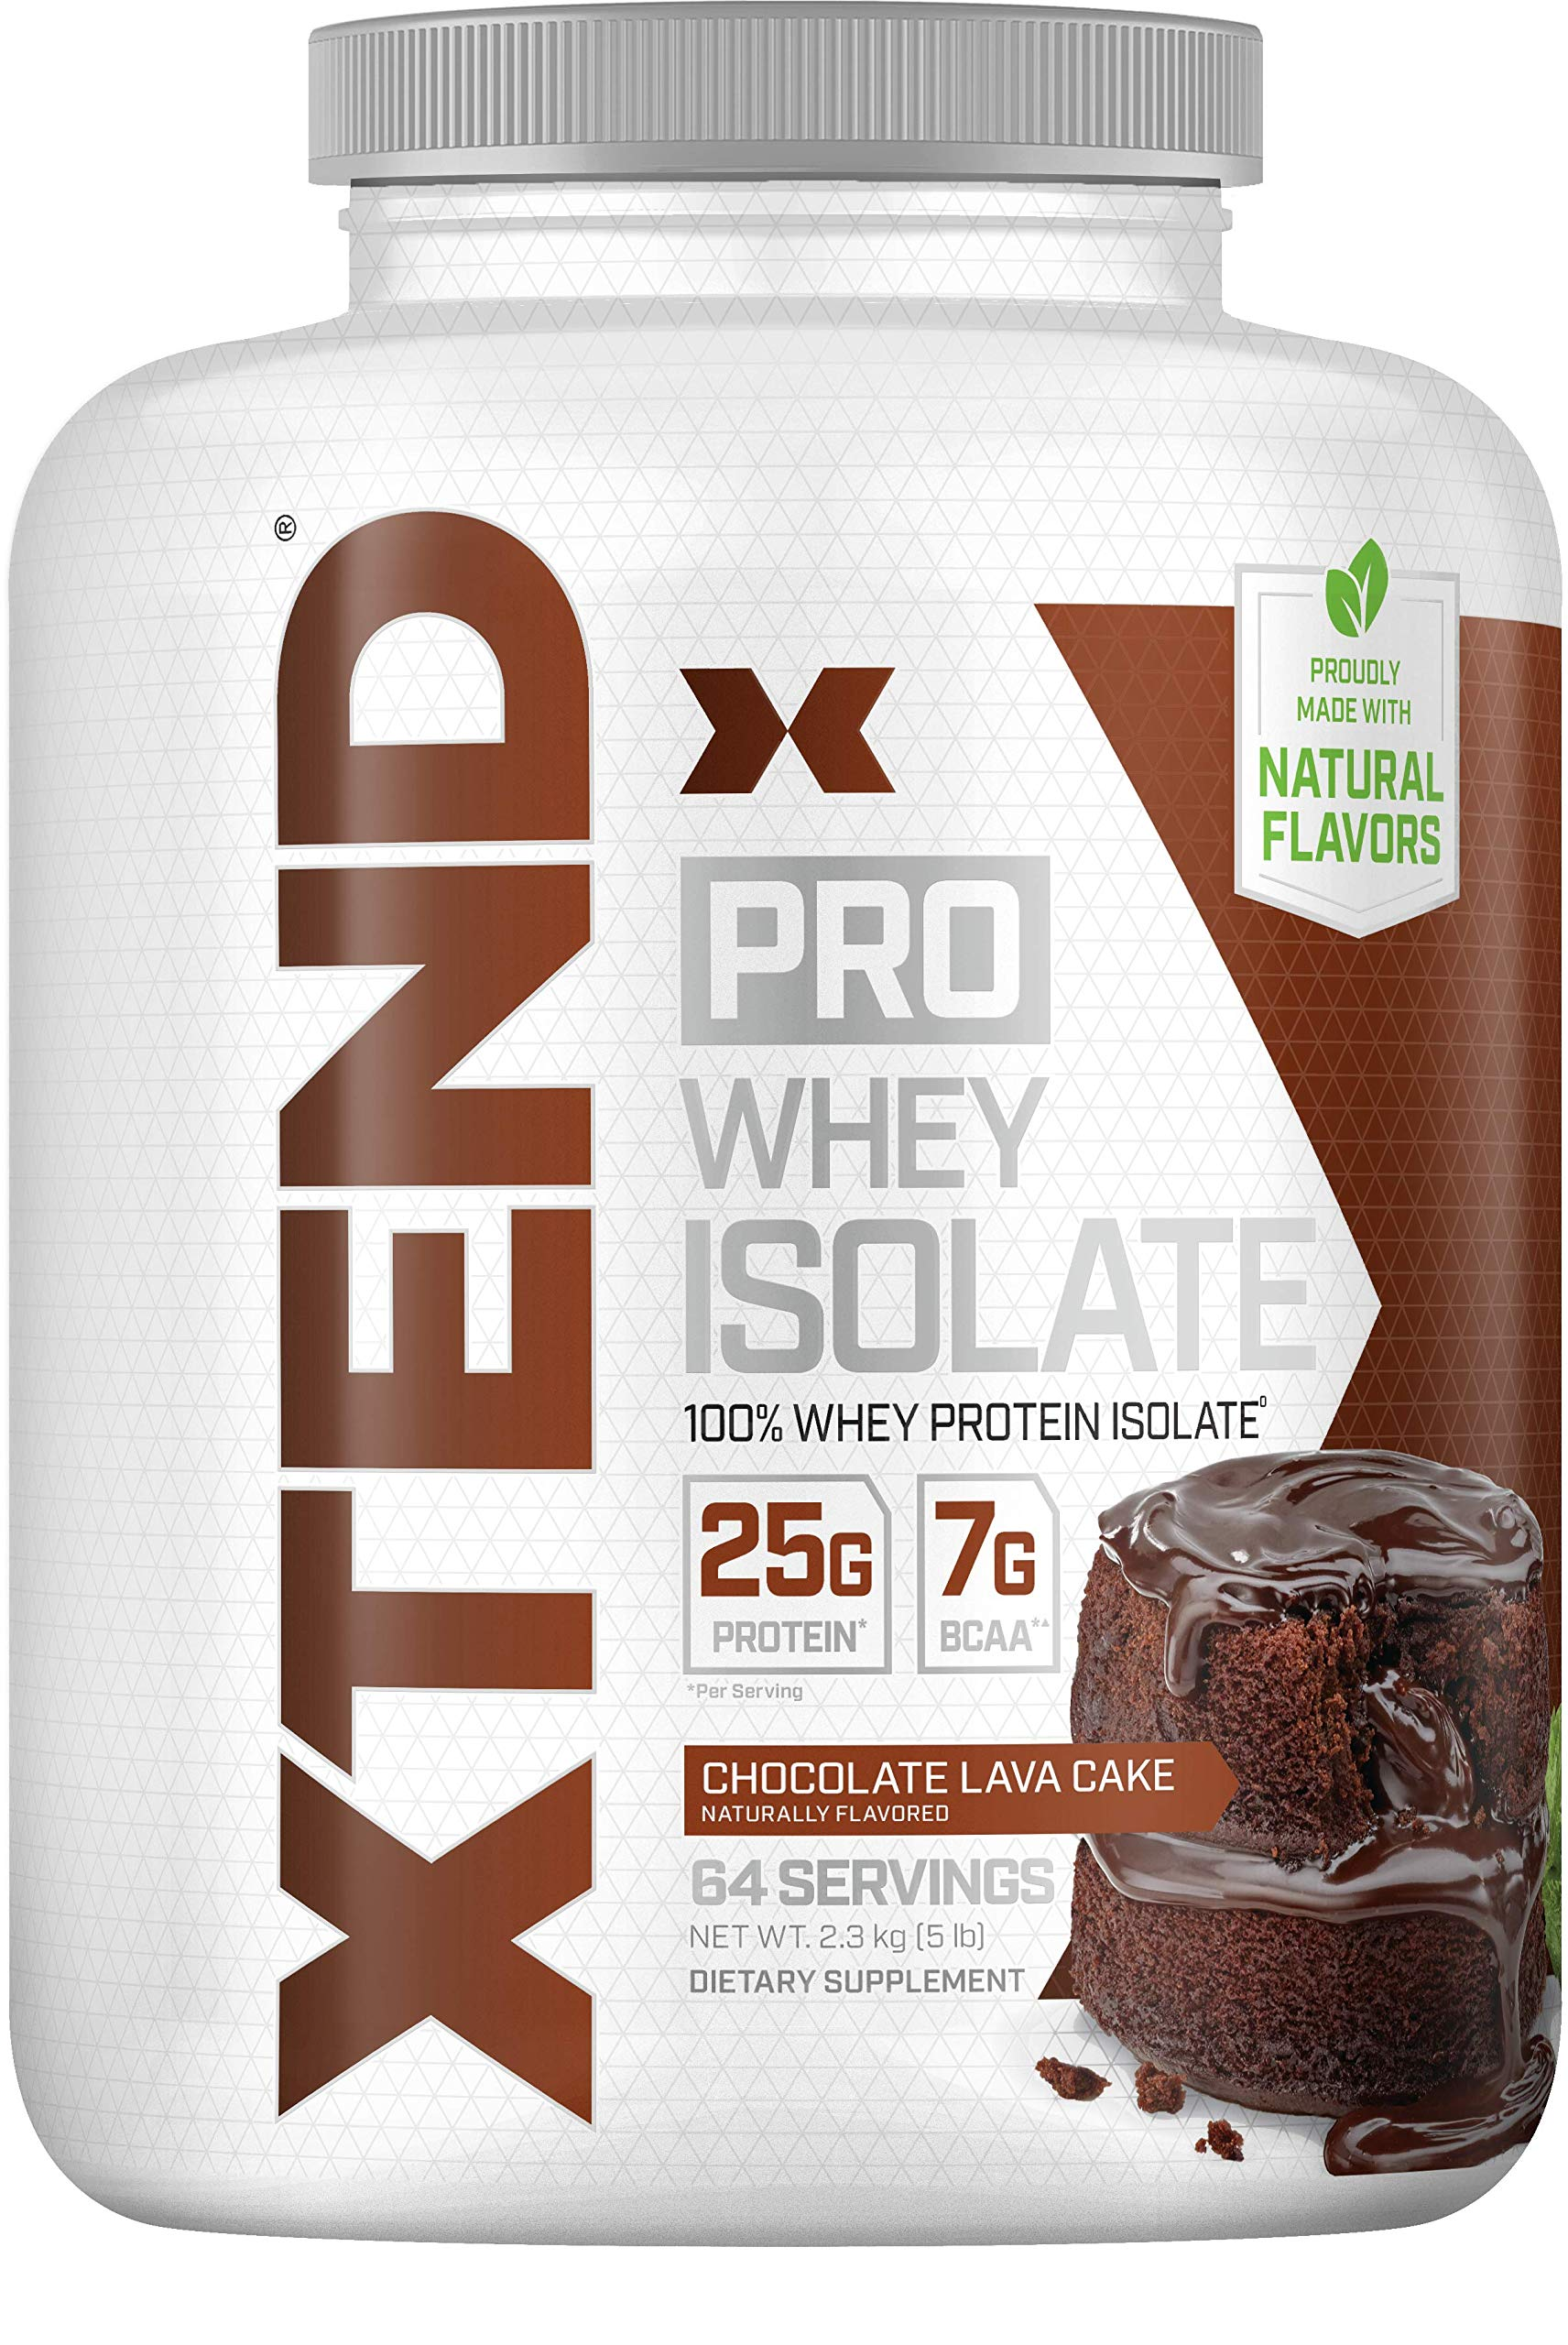 Scivation Xtend Pro, 100% Whey Protein Isolate Powder with BCAAs & Natural Flavors, Post Workout Recovery Drink, Gluten Free Low Carb Low Fat, Chocolate Lava Cake, 5 lbs